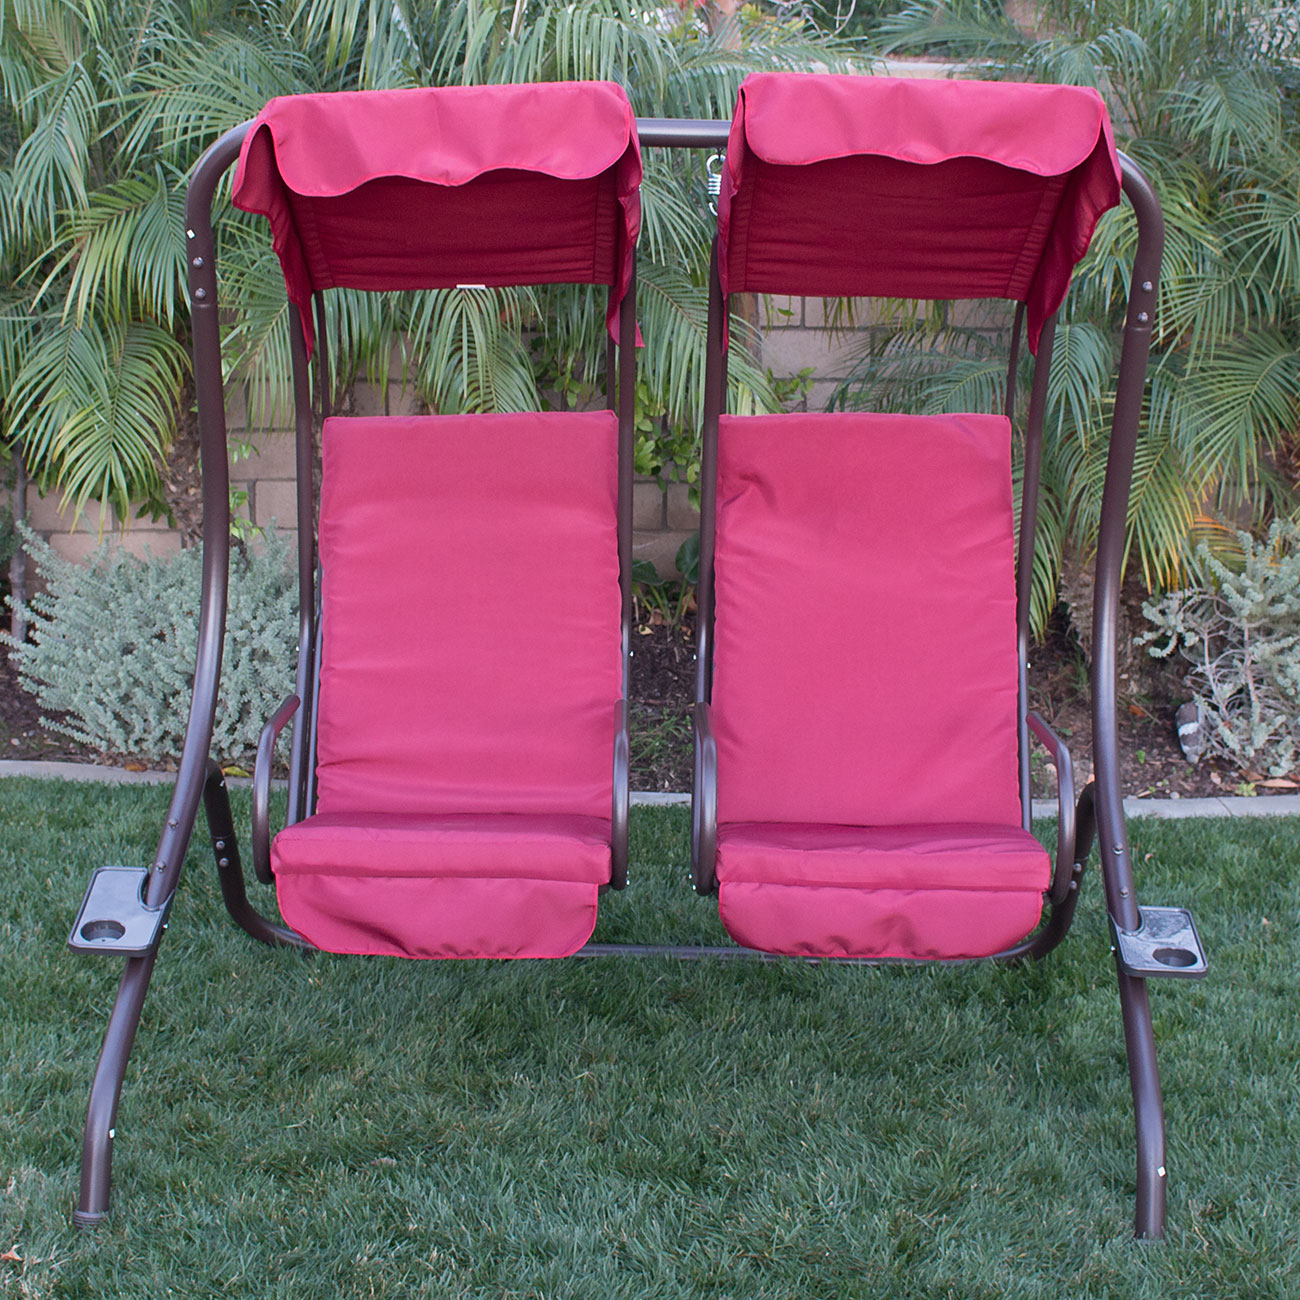 NEW Outdoor Double Swing Set 2 Person Canopy